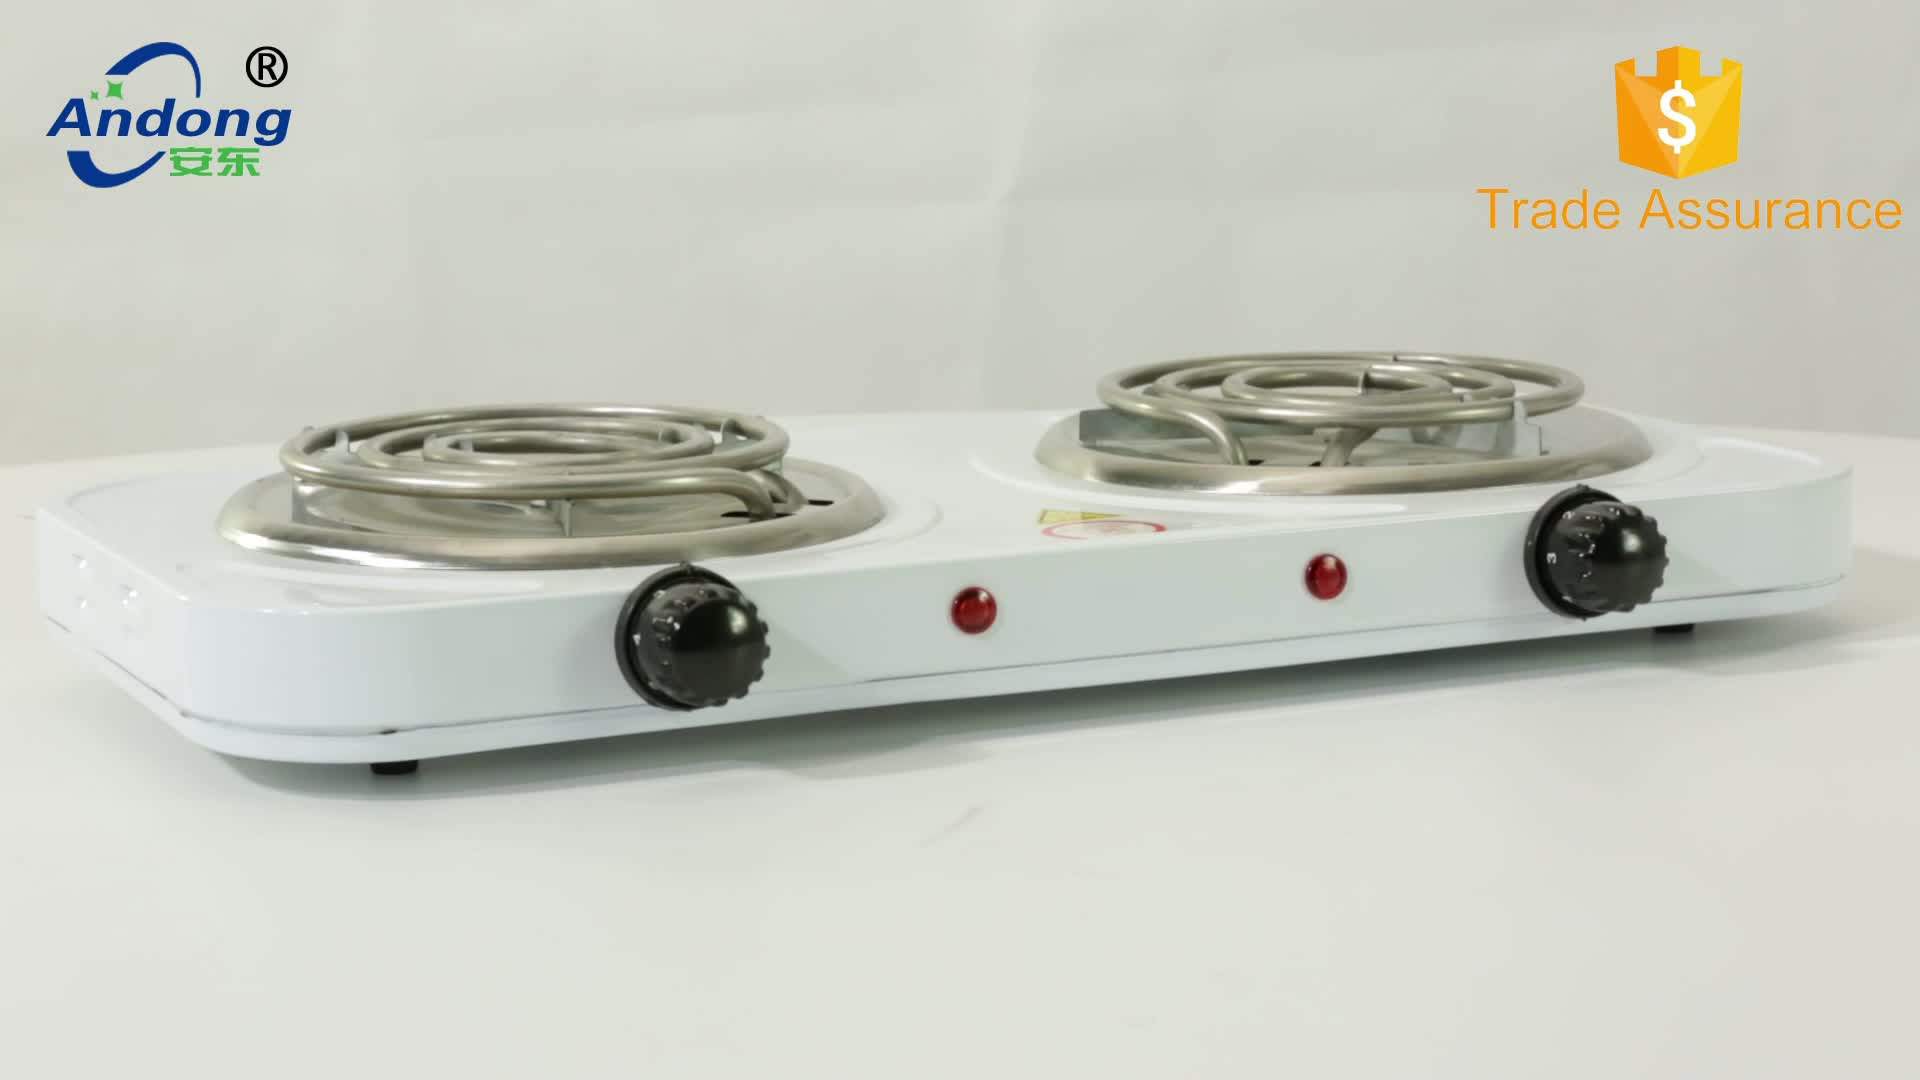 High quality 2 burner electric stove kitchen hot plates cooking appliances